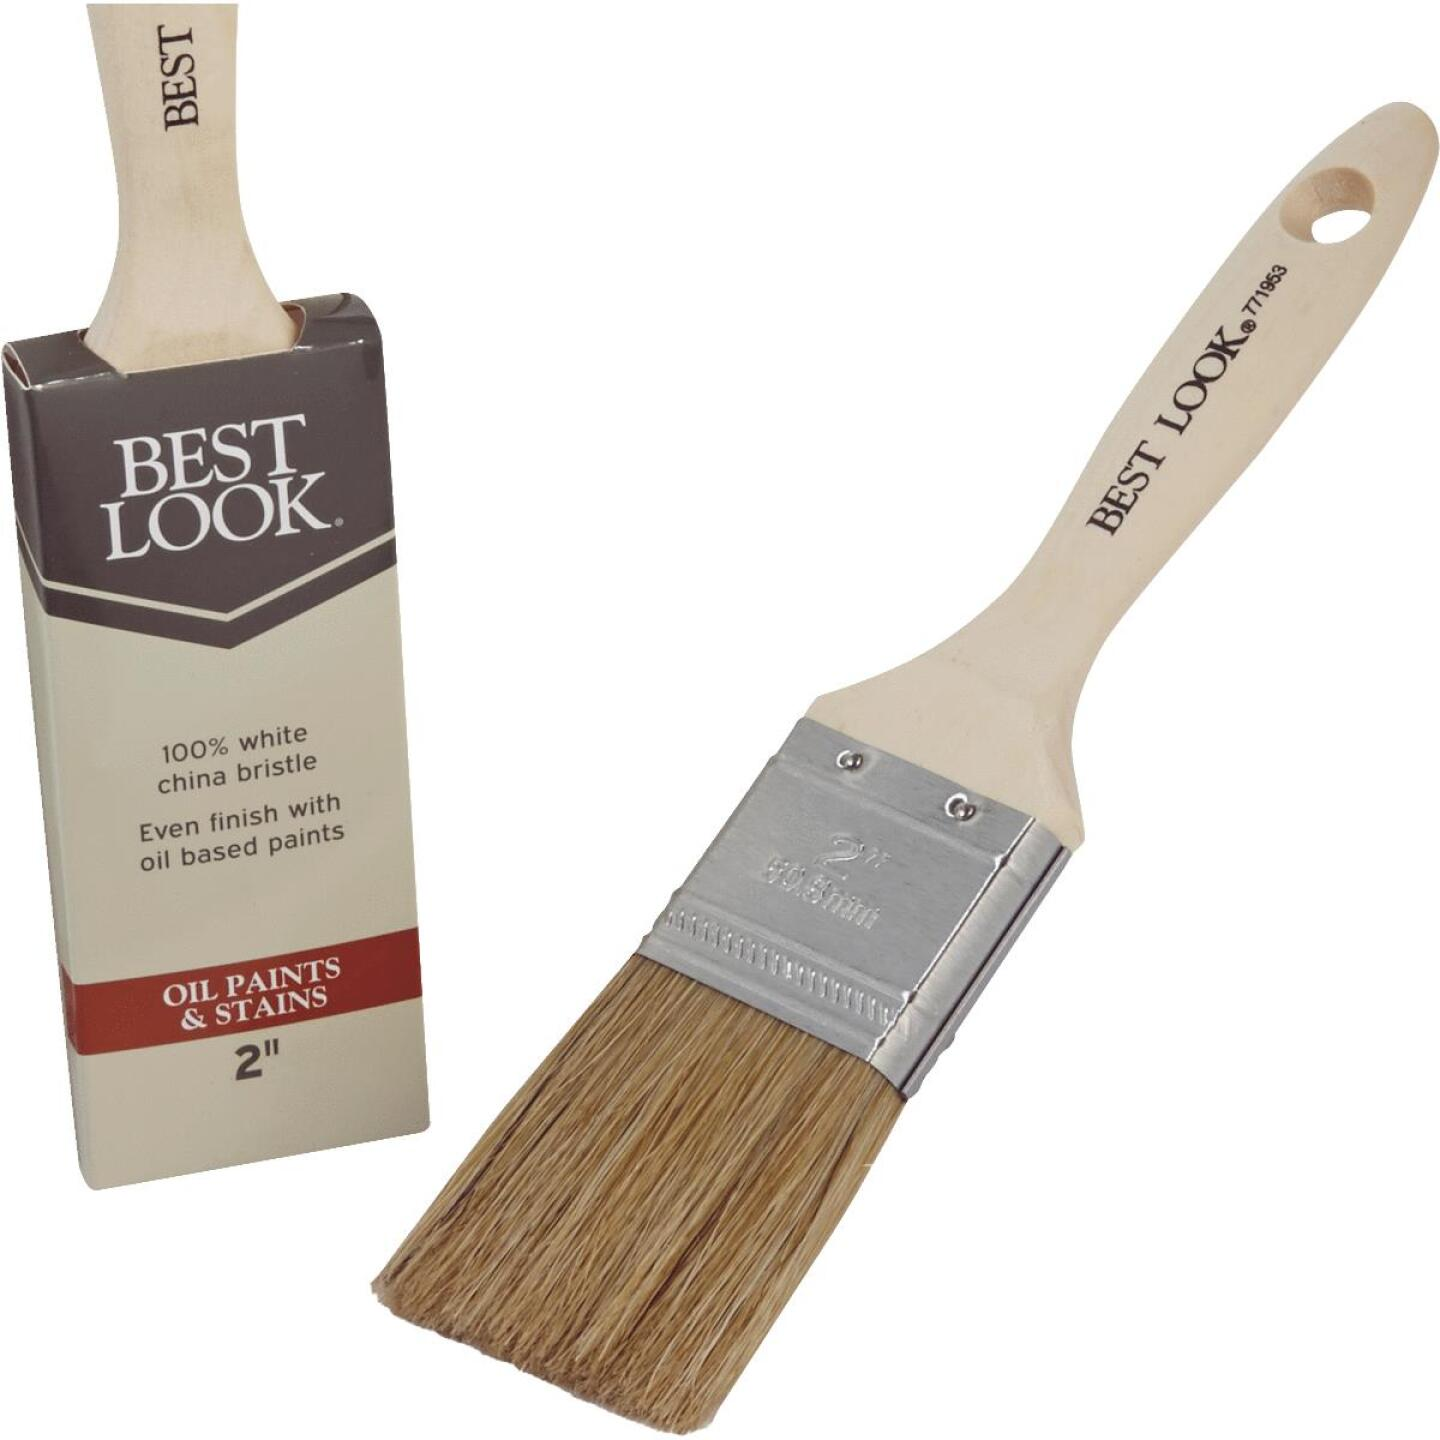 Best Look 2 In. Flat White Natural China Bristle Paint Brush Image 1